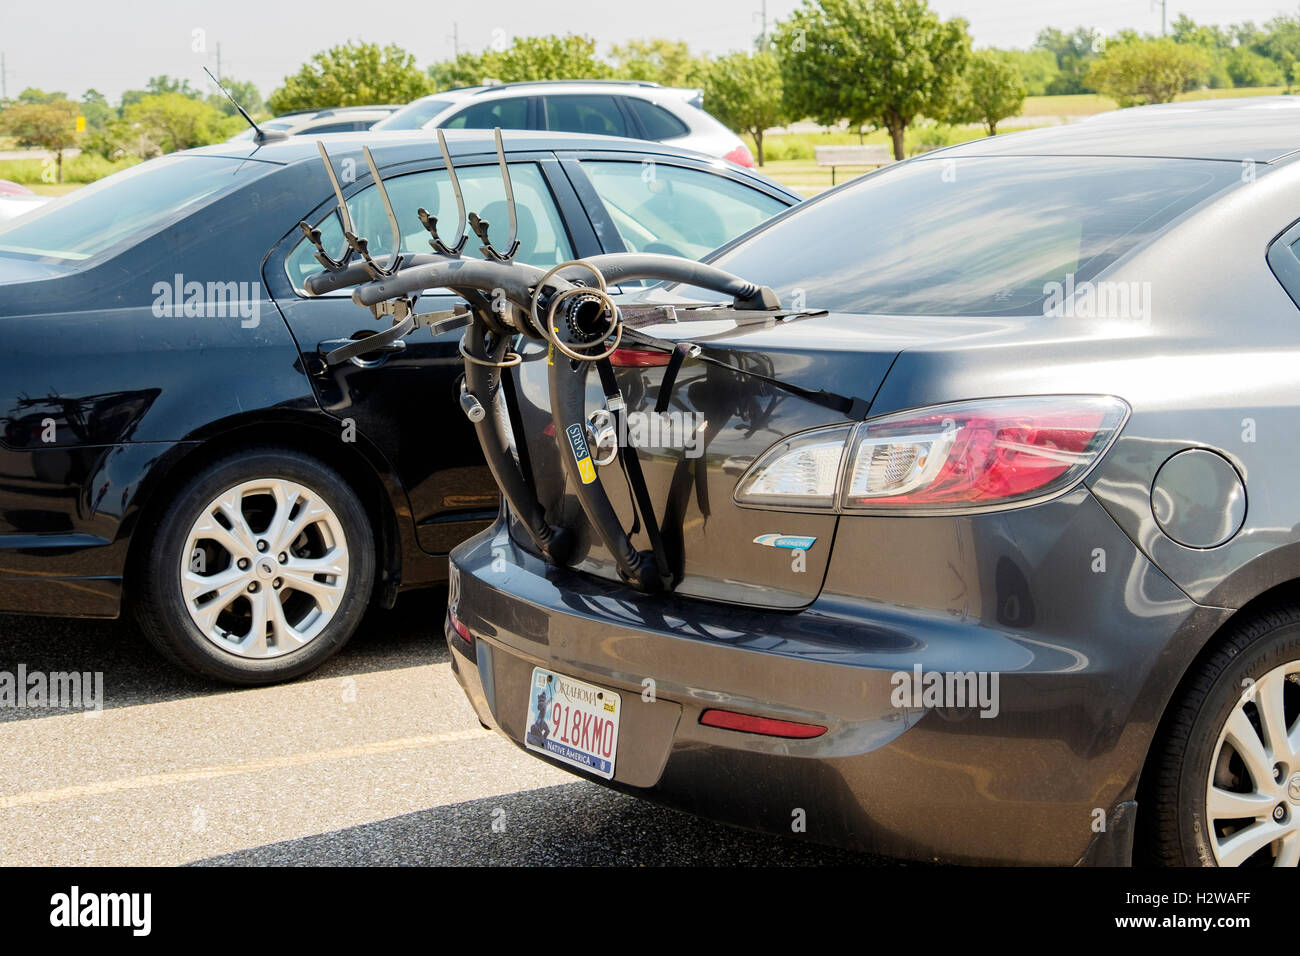 A Saris bicycle rack attached to the back of a car in a parking lot. Oklahoma City, Oklahoma, USA. - Stock Image